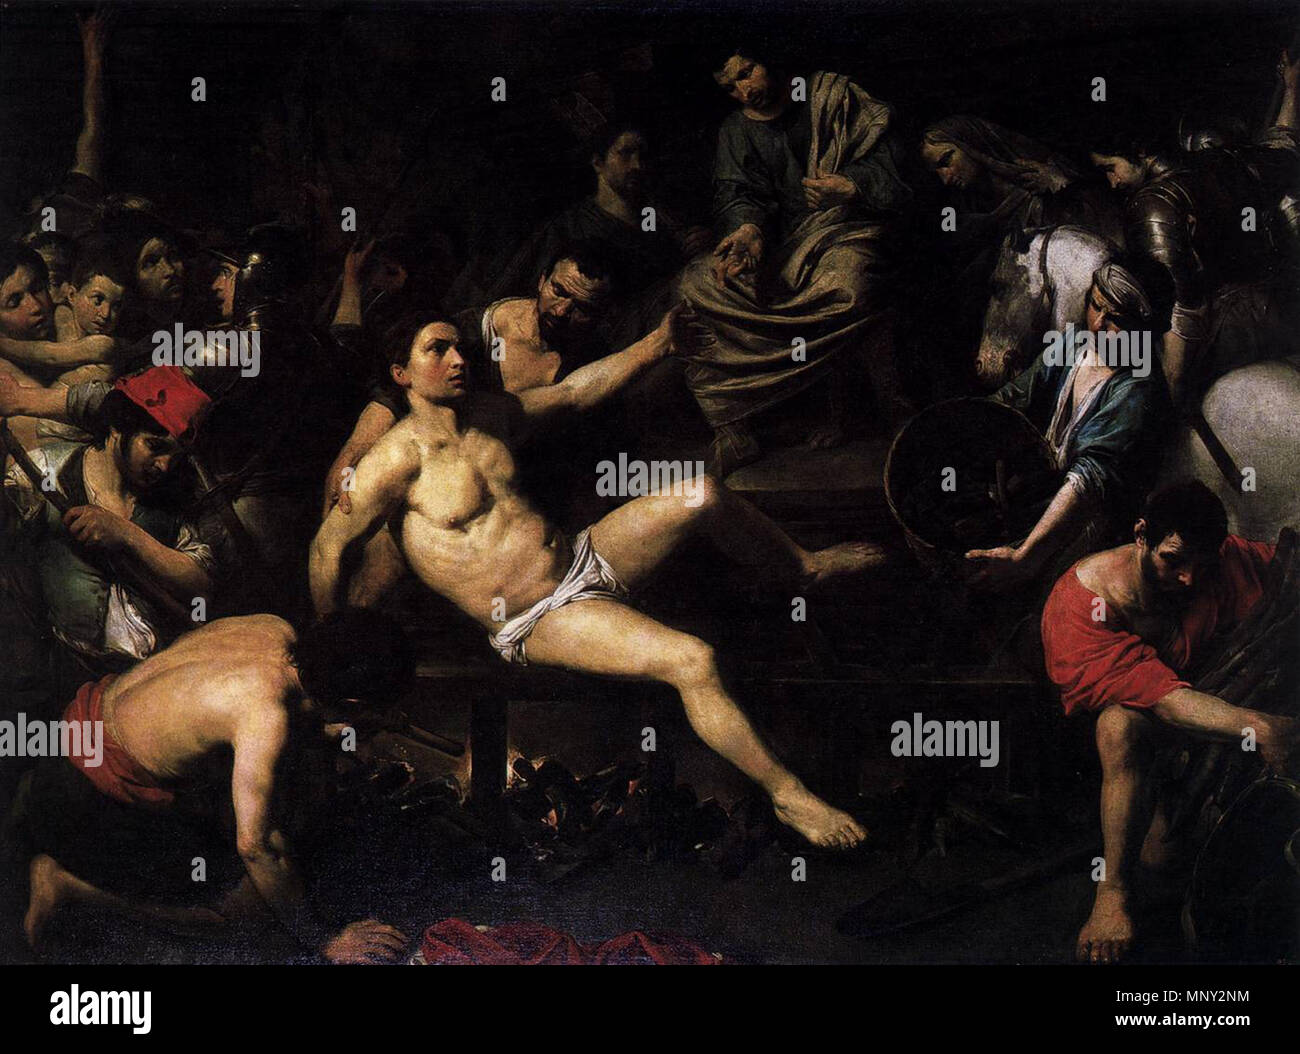 Martyrdom of St Lawrence   between 1621 and 1622.   1218 Valentin de Boulogne - Martyrdom of St Lawrence - WGA24245 - Stock Image